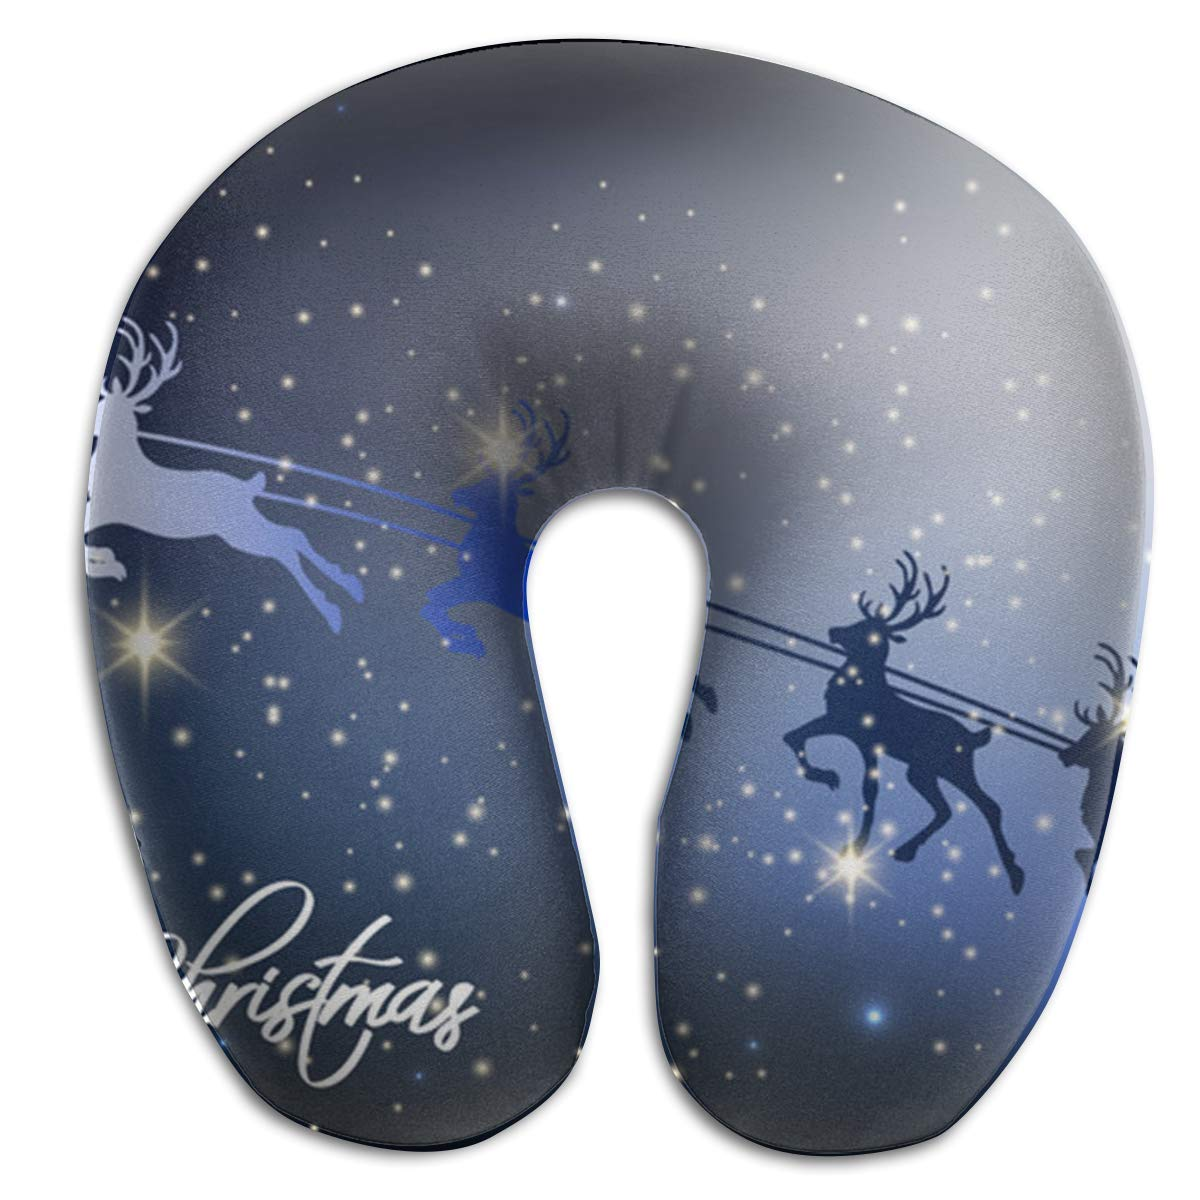 Memory Foam Neck Pillow Christmas Holidays Reindeer U-Shape Travel Pillow Ergonomic Contoured Design Washable Cover for Airplane Train Car Bus Office Hoklcvd